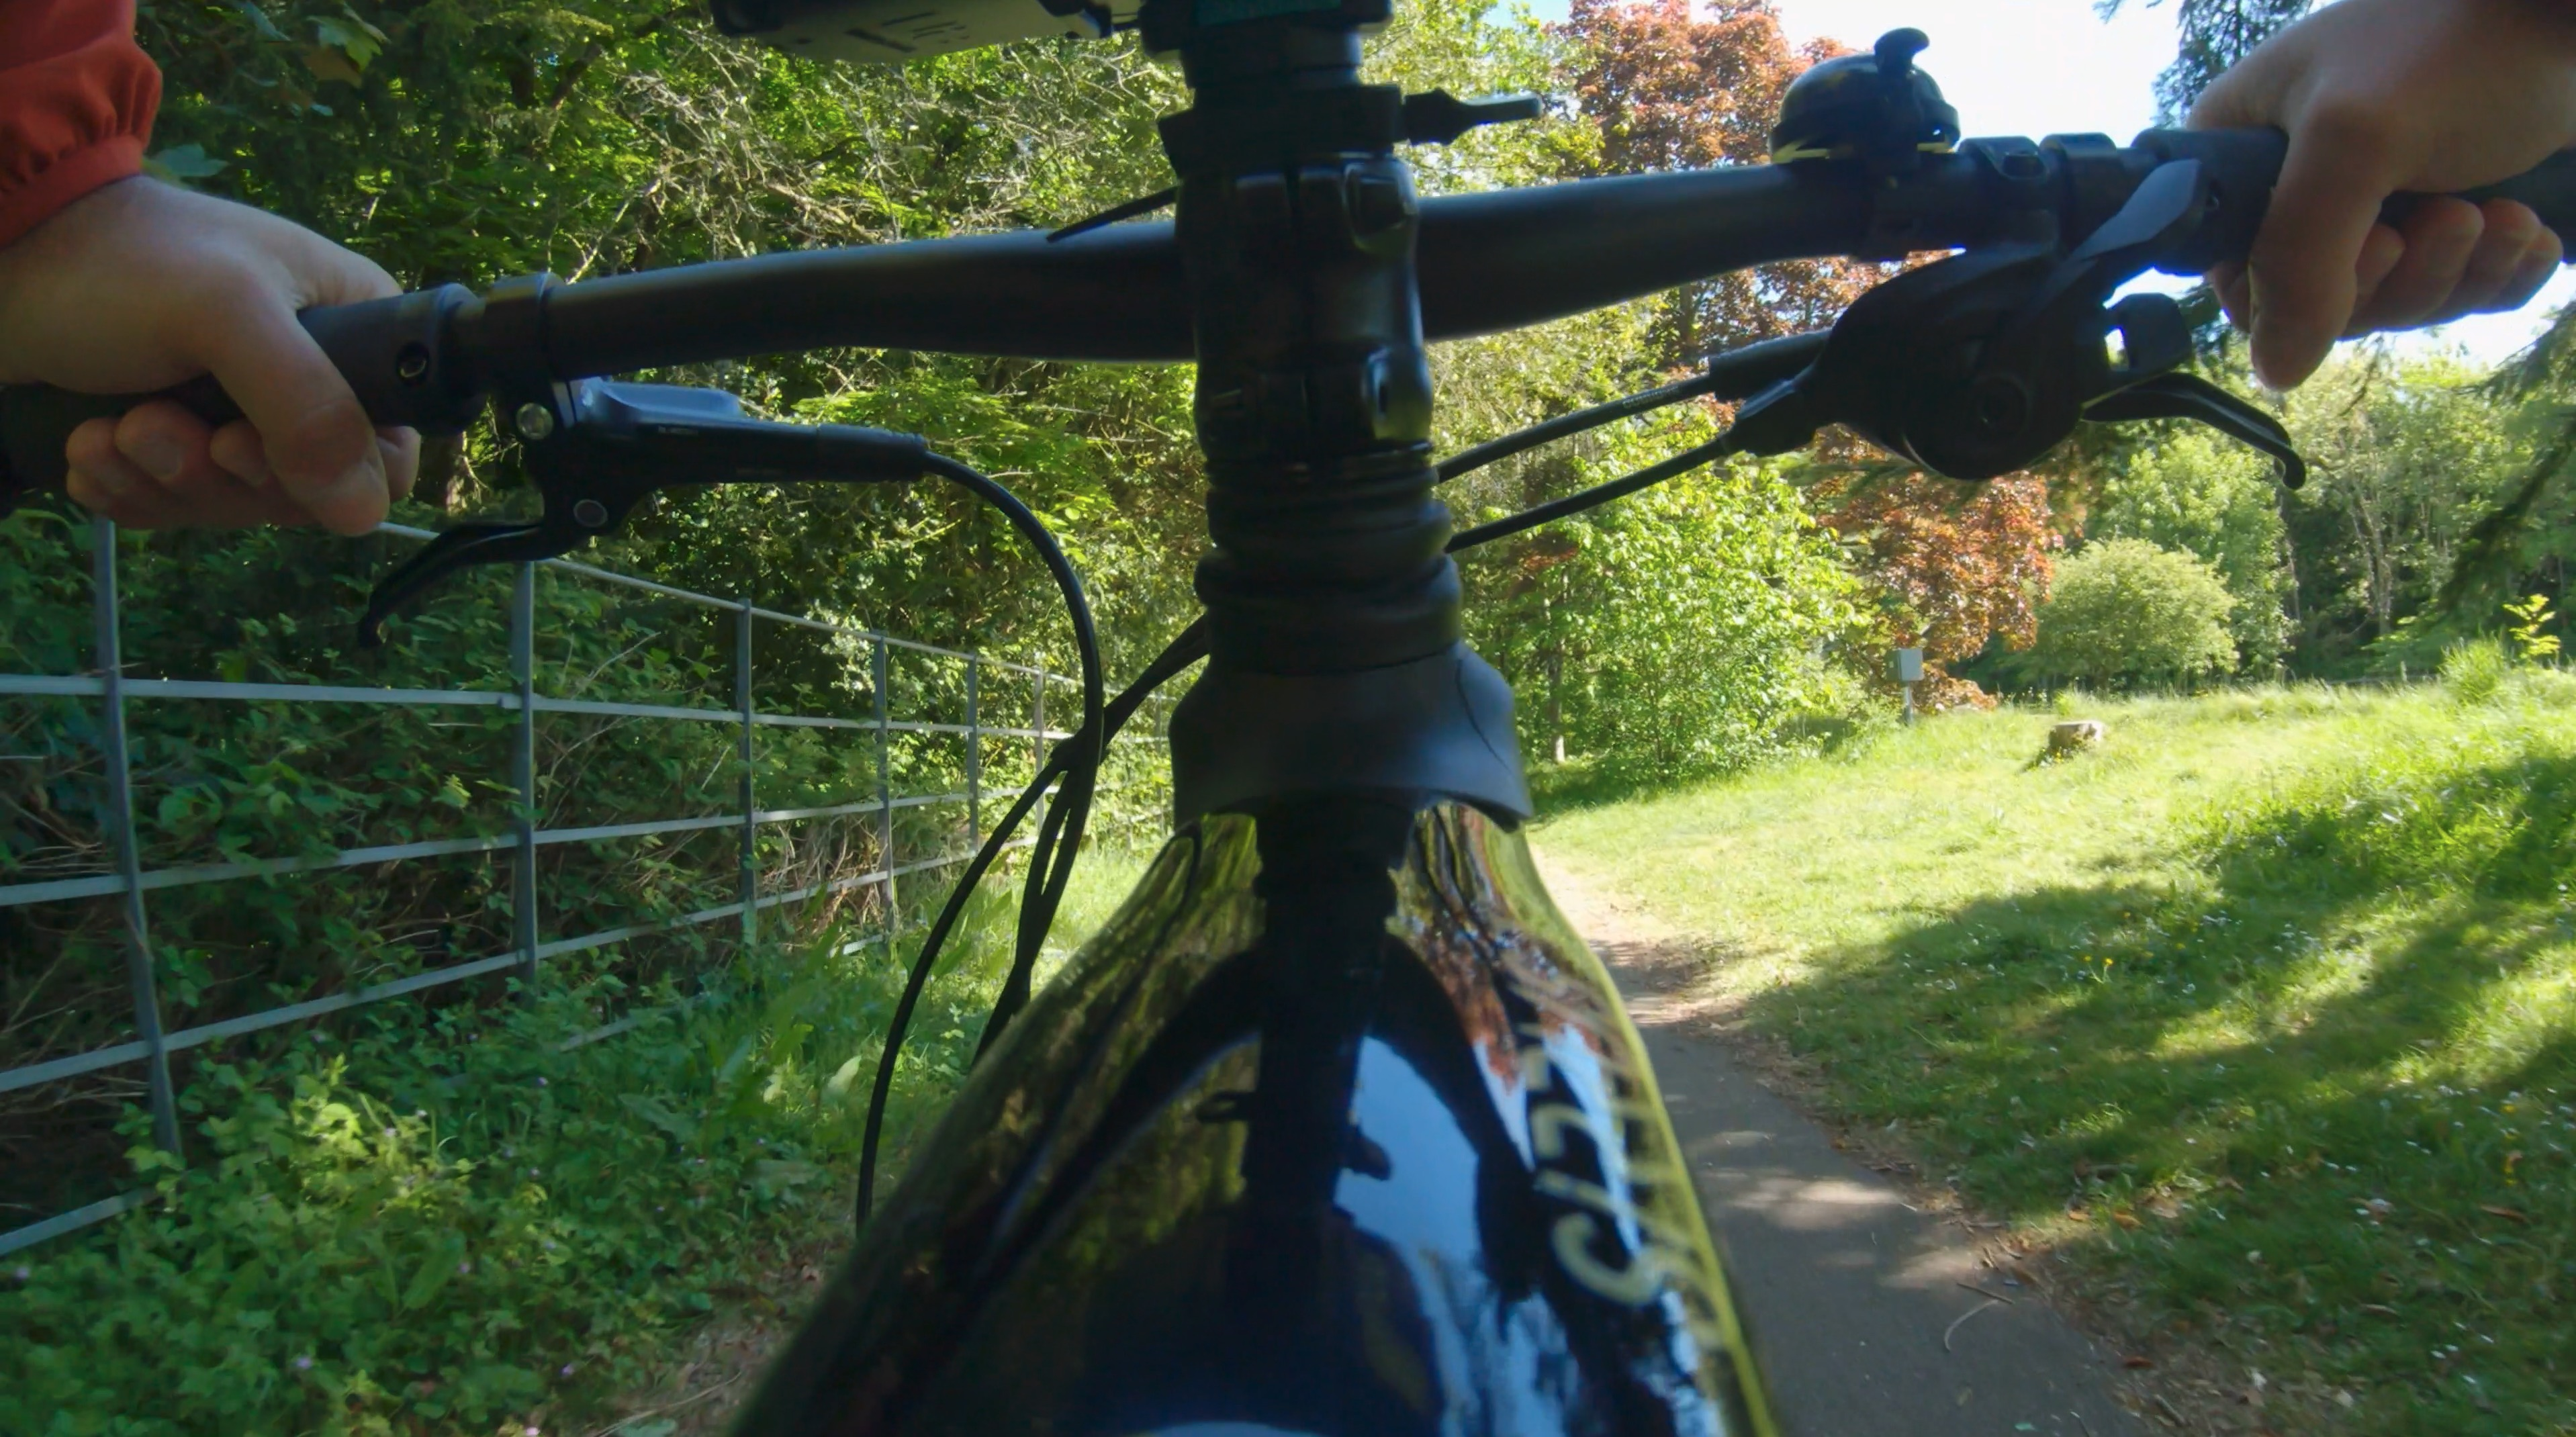 Redshift Shockstop Seatpost / Specialized Future Shock - The Ultimate Combo